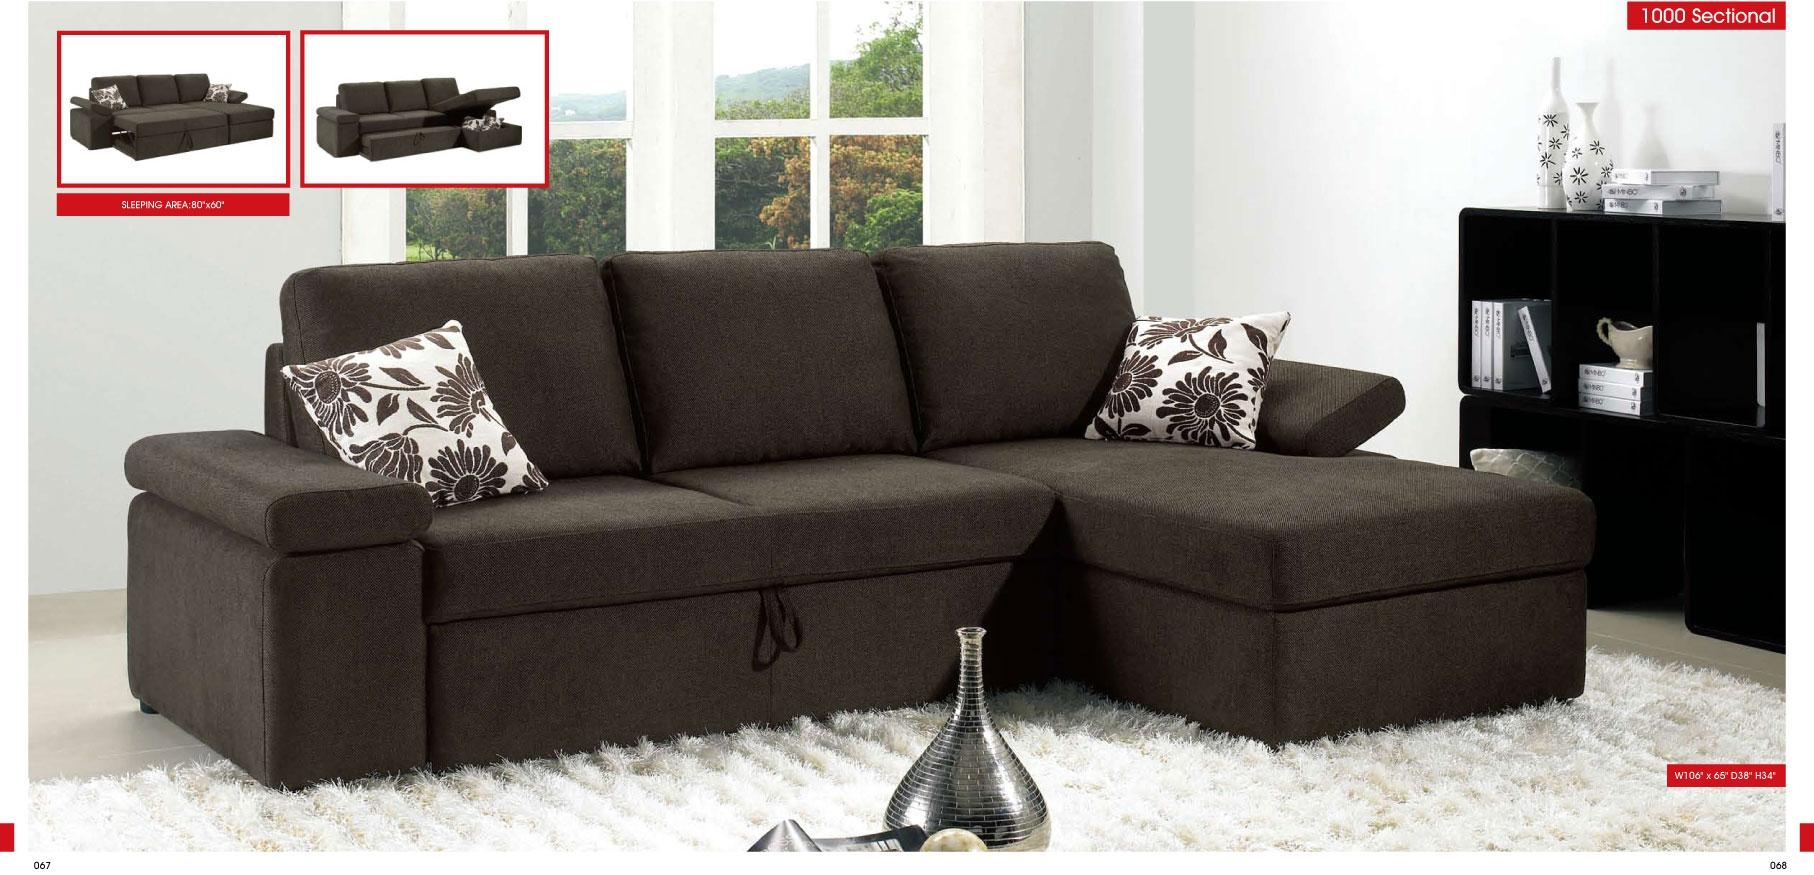 Pull Out Sofa Sectional | Tehranmix Decoration Intended For Pull Out Sectional (Image 14 of 20)